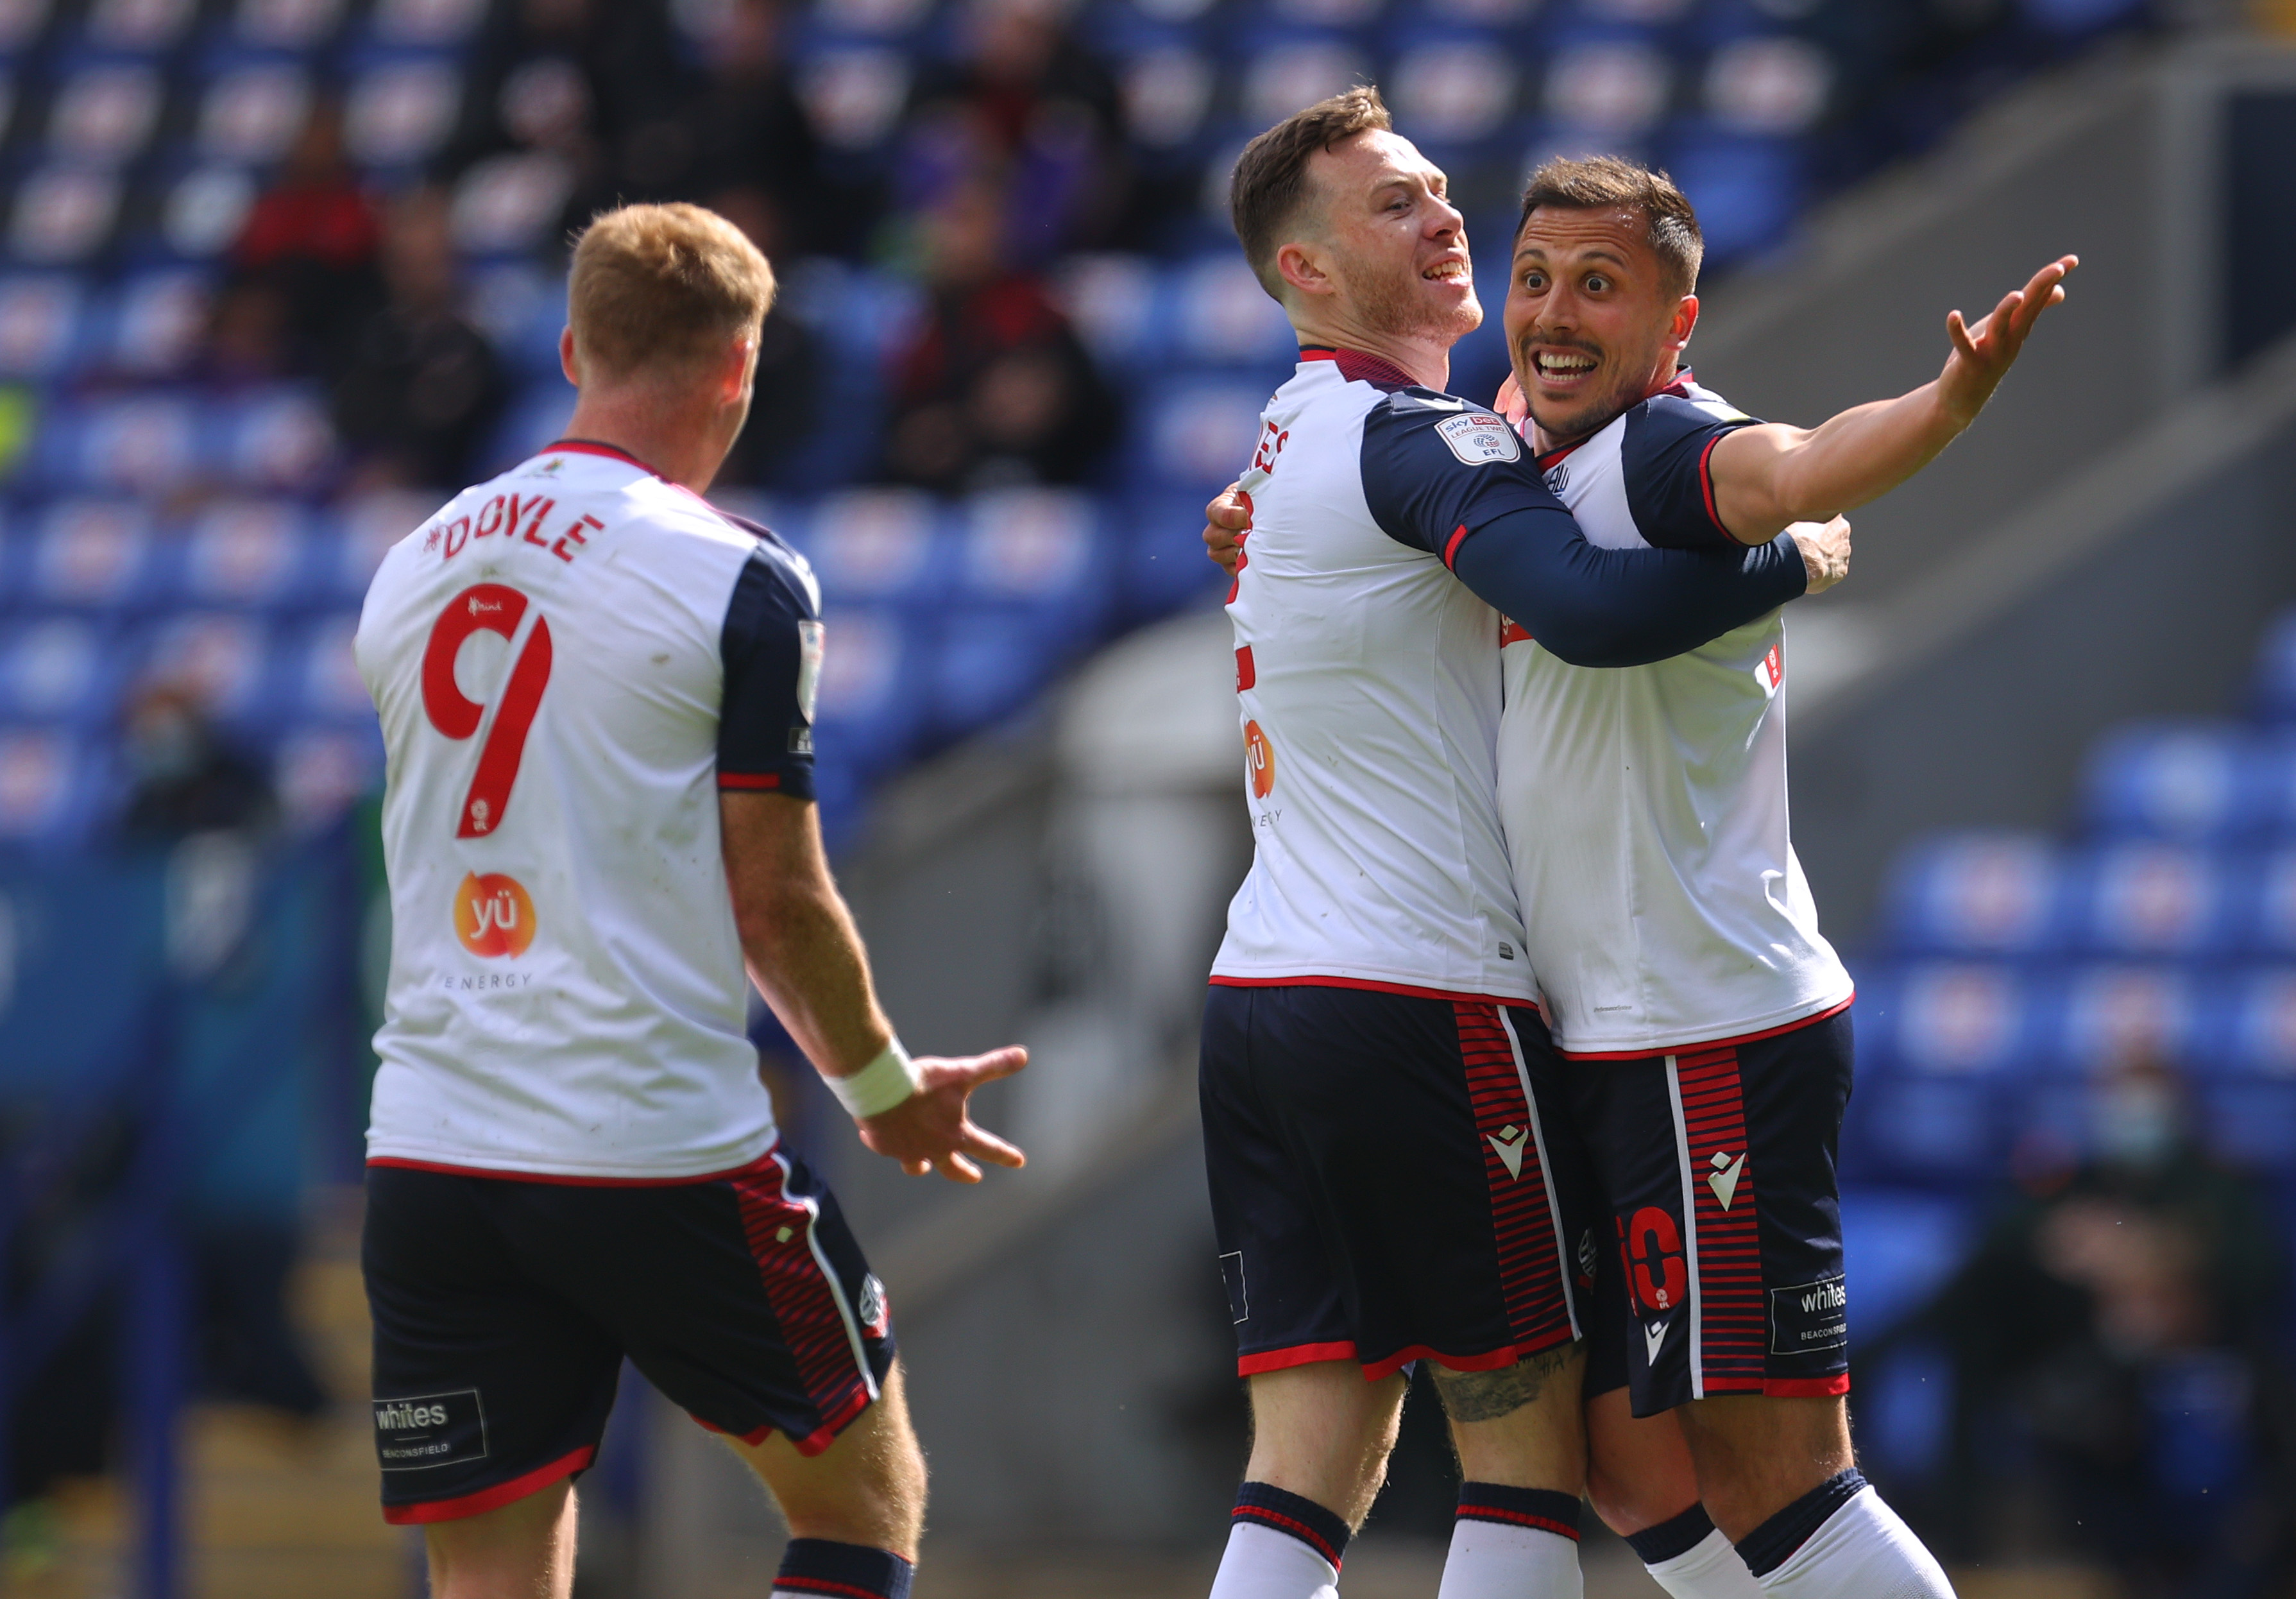 Bolton Wanderers v Exeter City - Sky Bet League Two